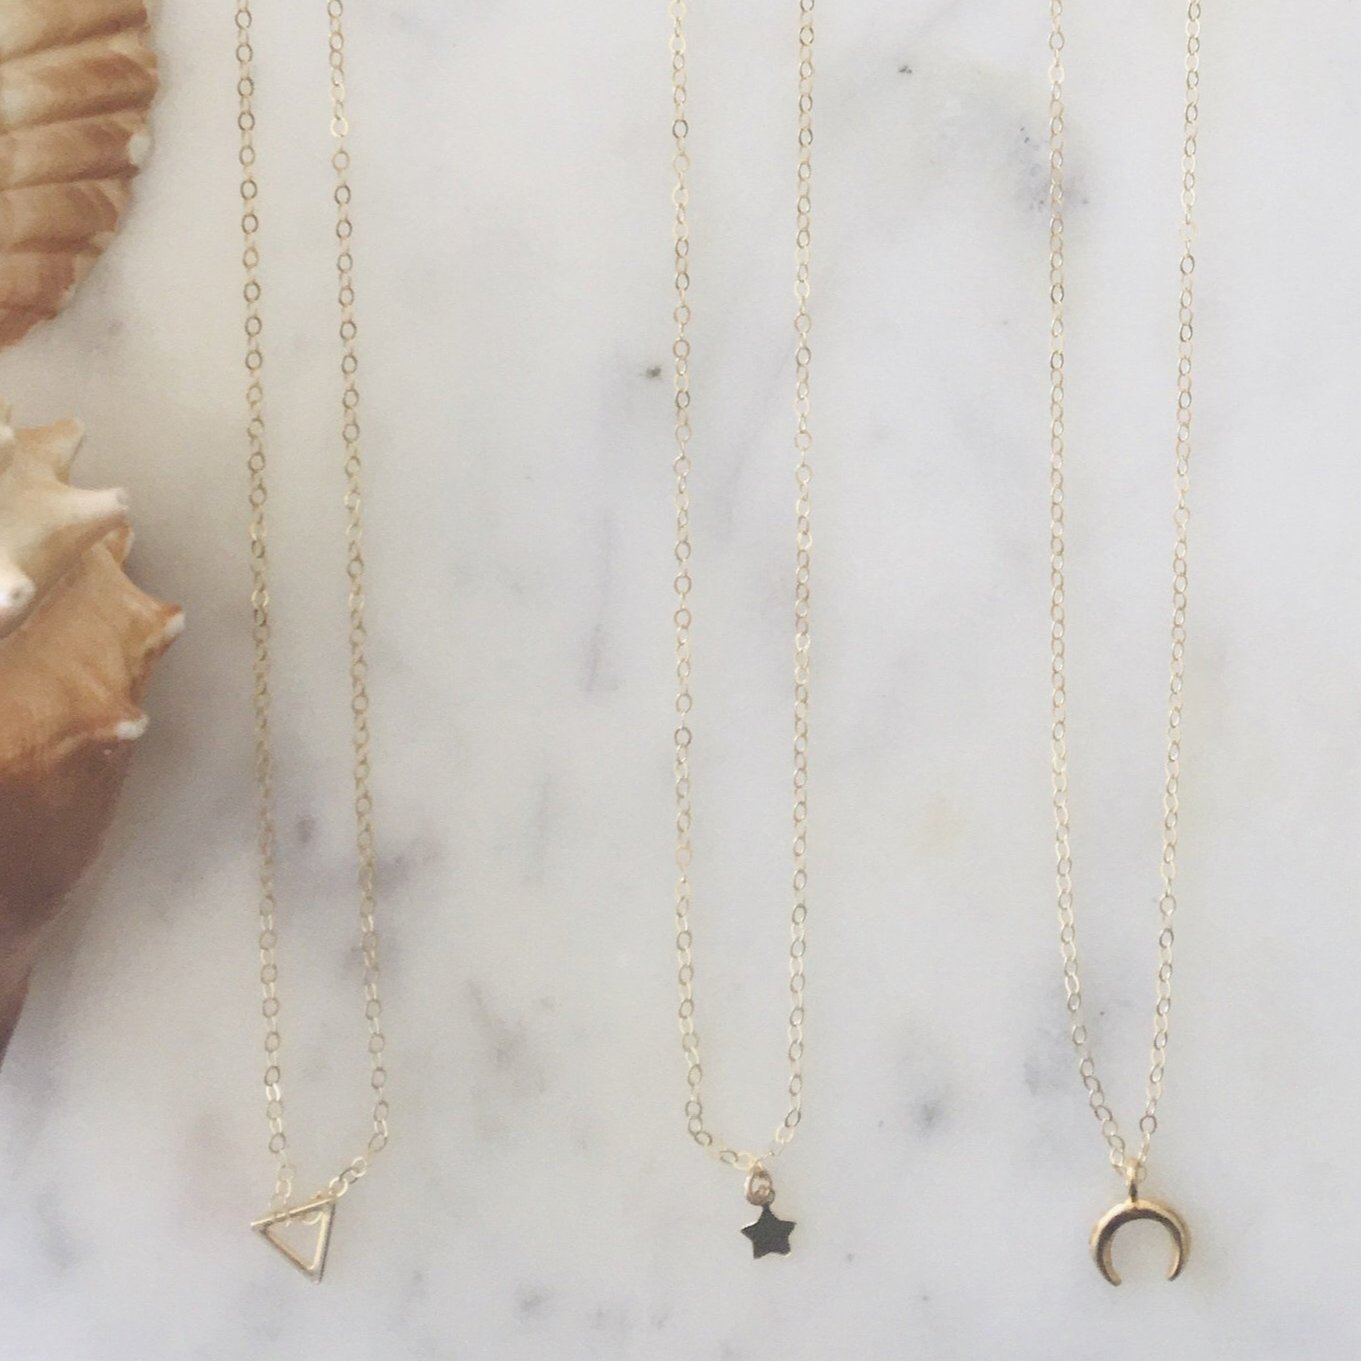 The Tiny Star Necklace